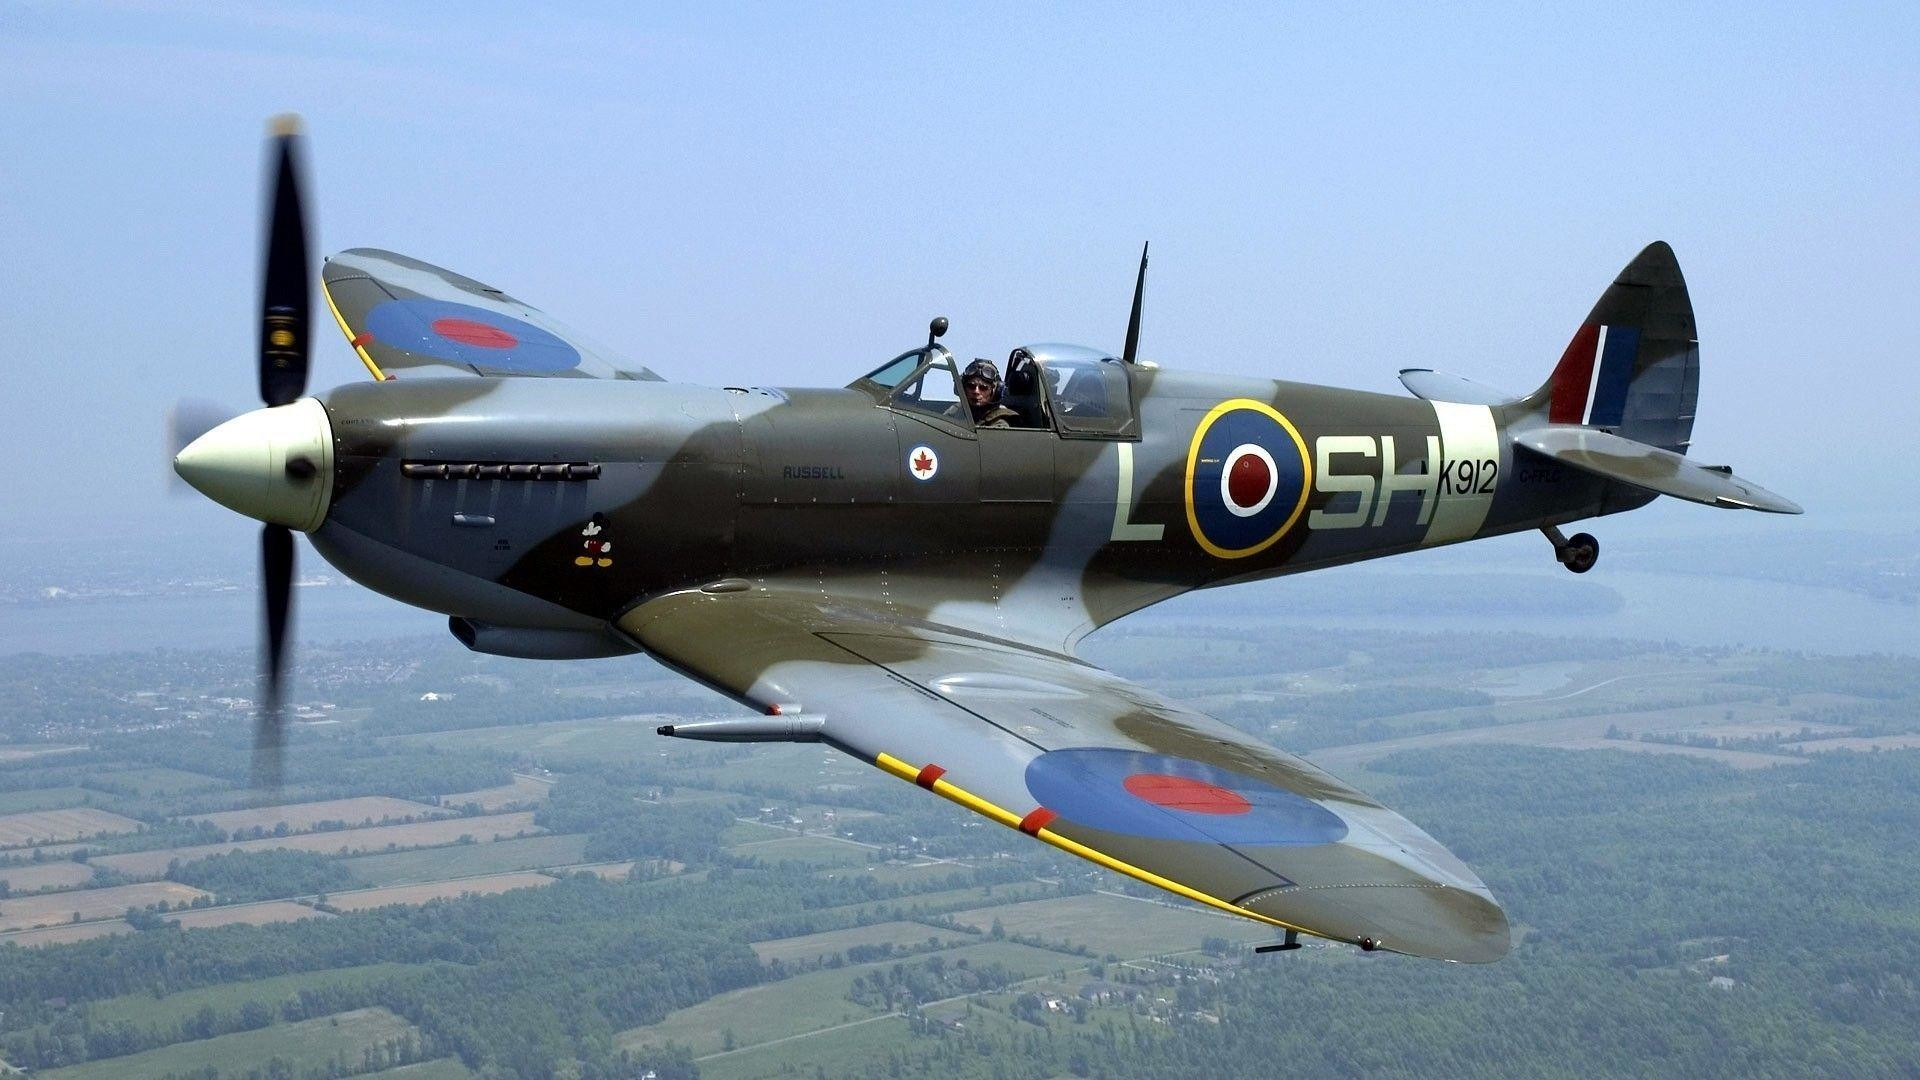 1920x1080 Supermarine Spitfire Wallpaper Hd Desktop 10 HD Wallpapers .